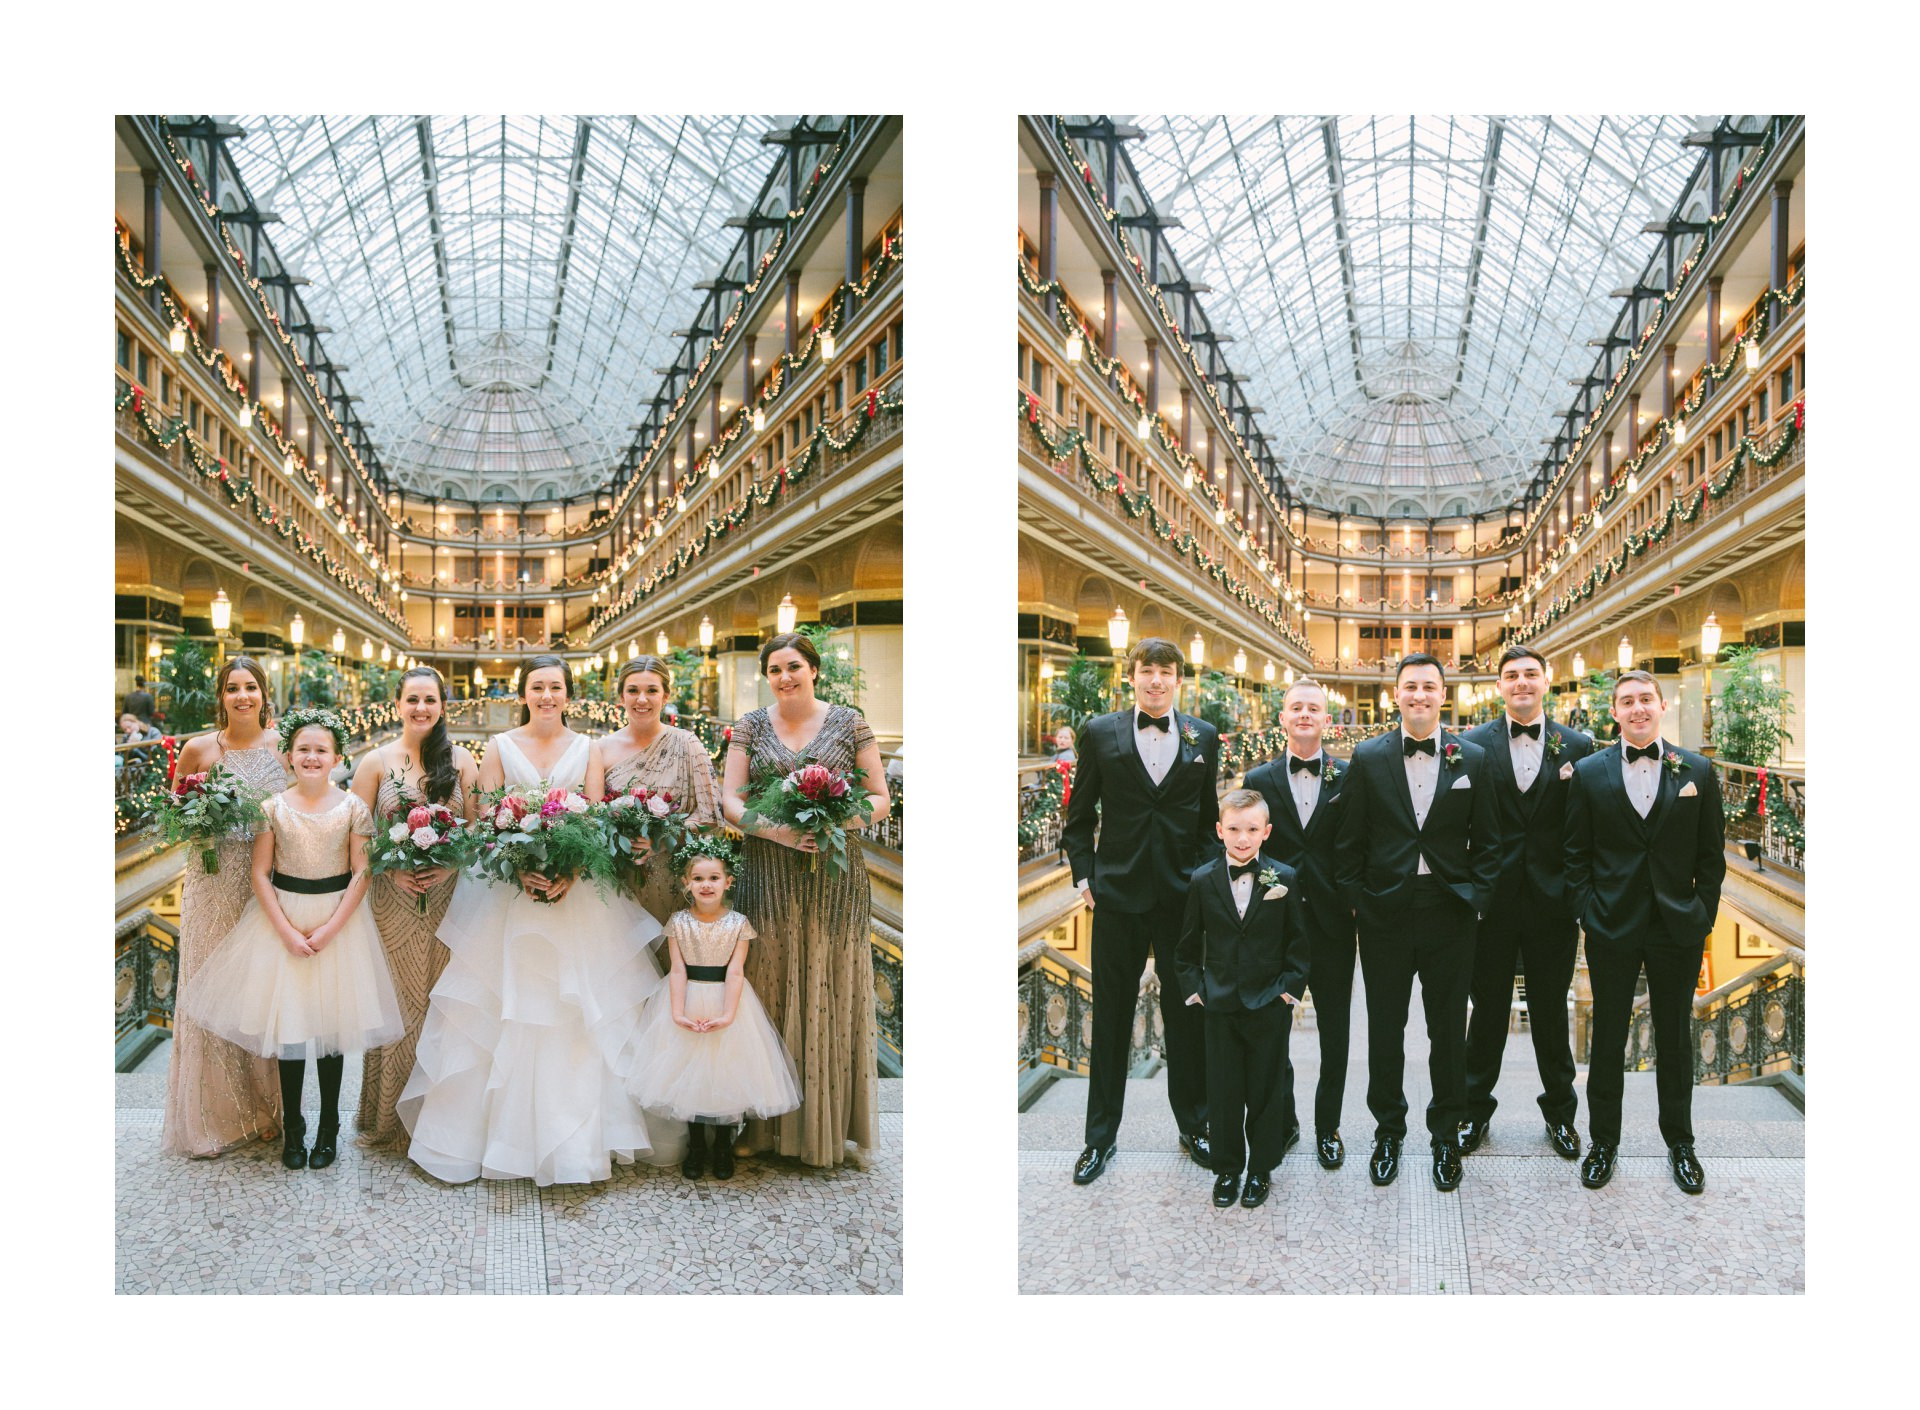 Hyatt Old Arcade Wedding Photographer in Cleveland 1 31.jpg